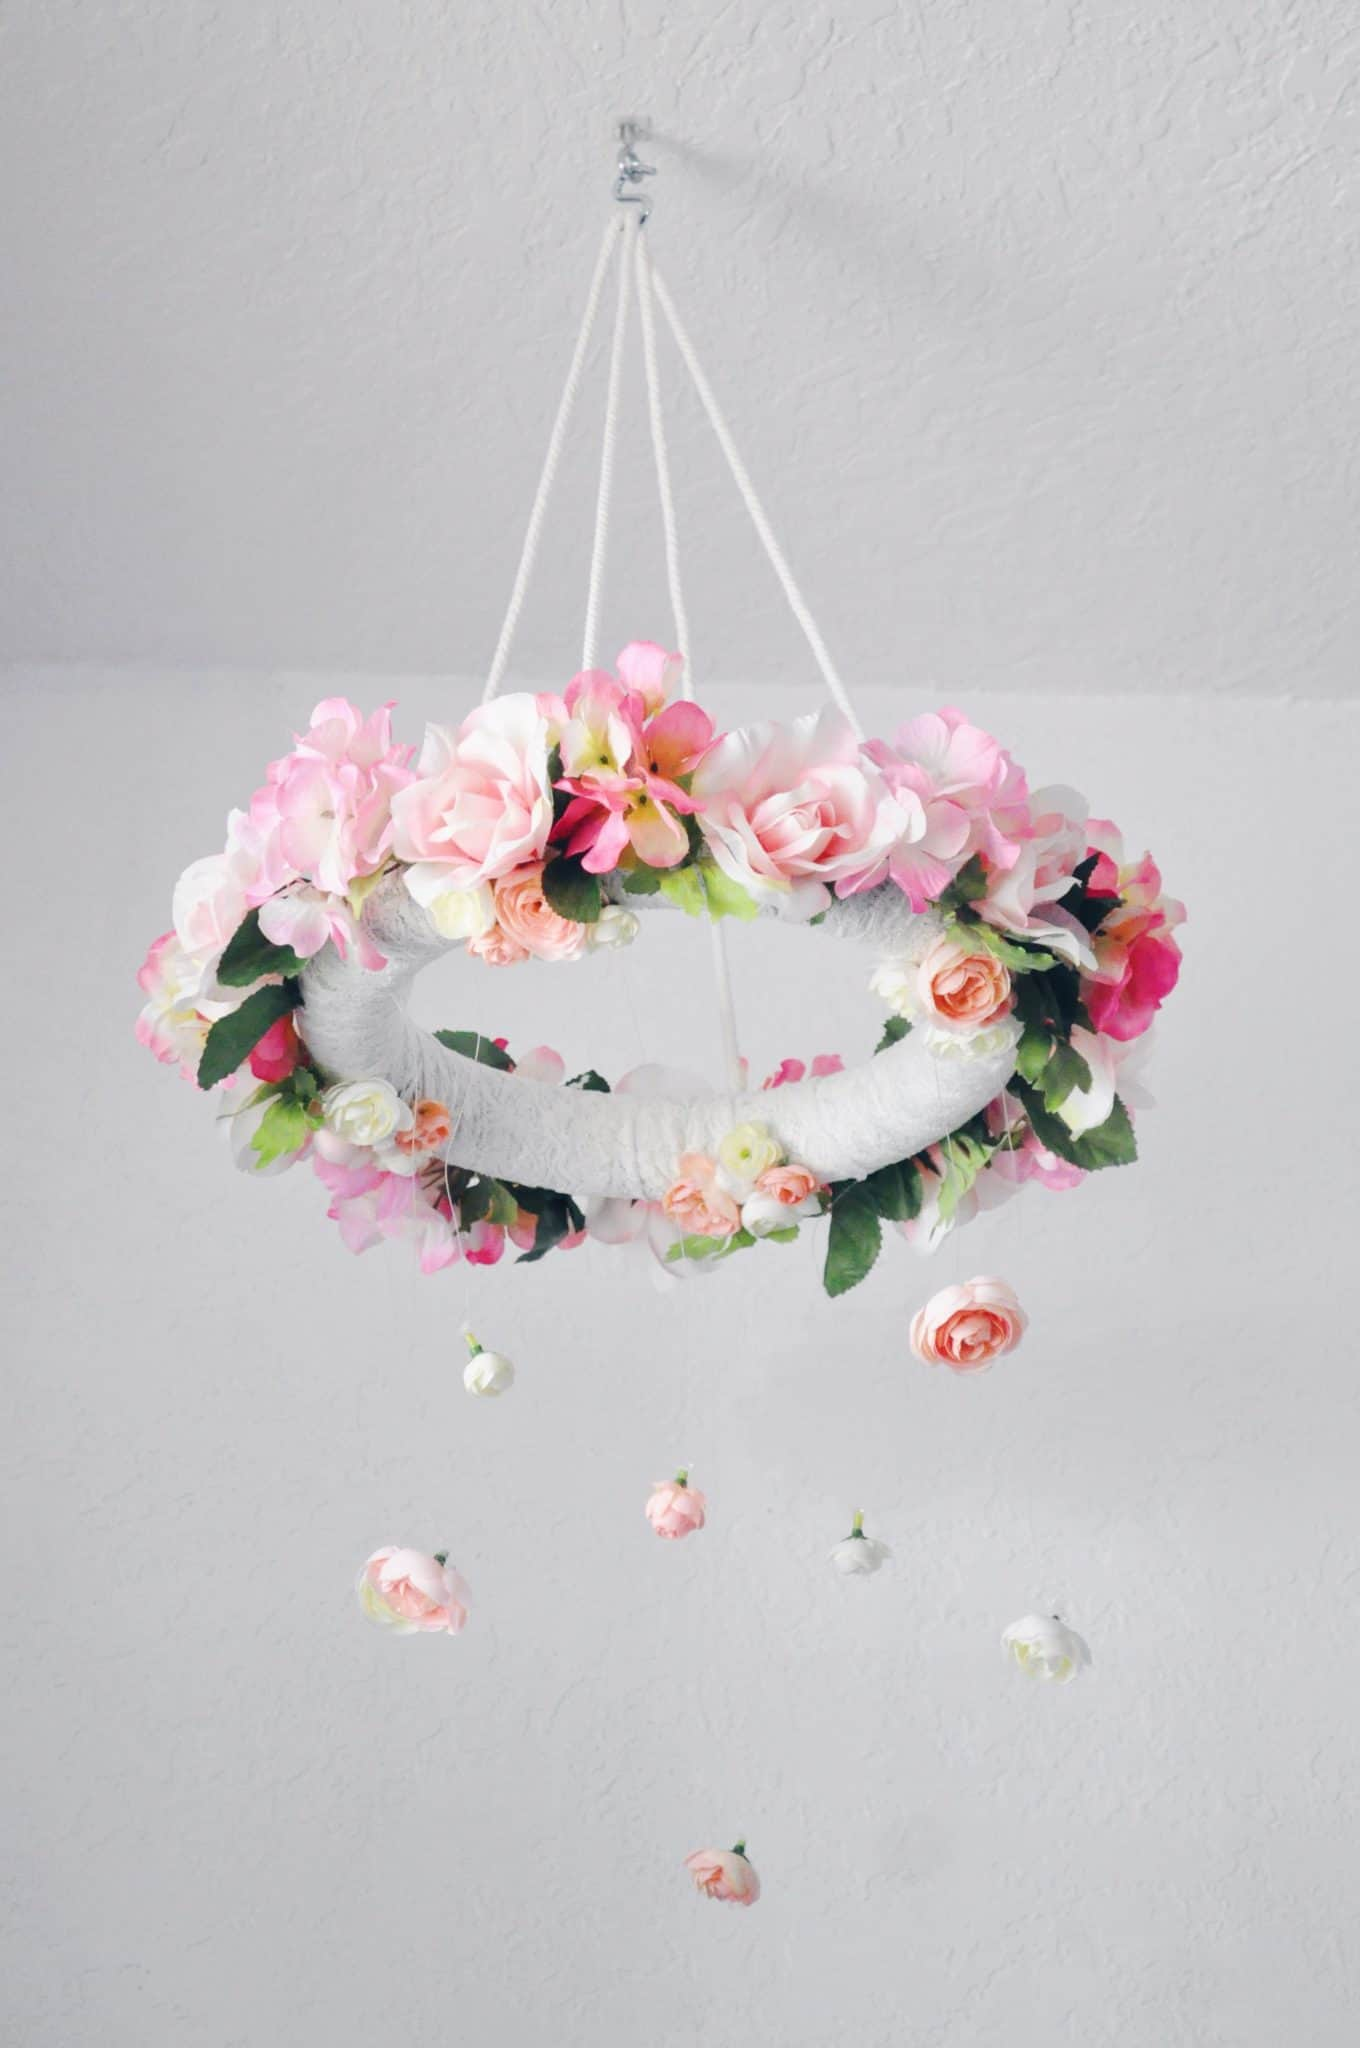 DIY hanging flower mobile in nursery